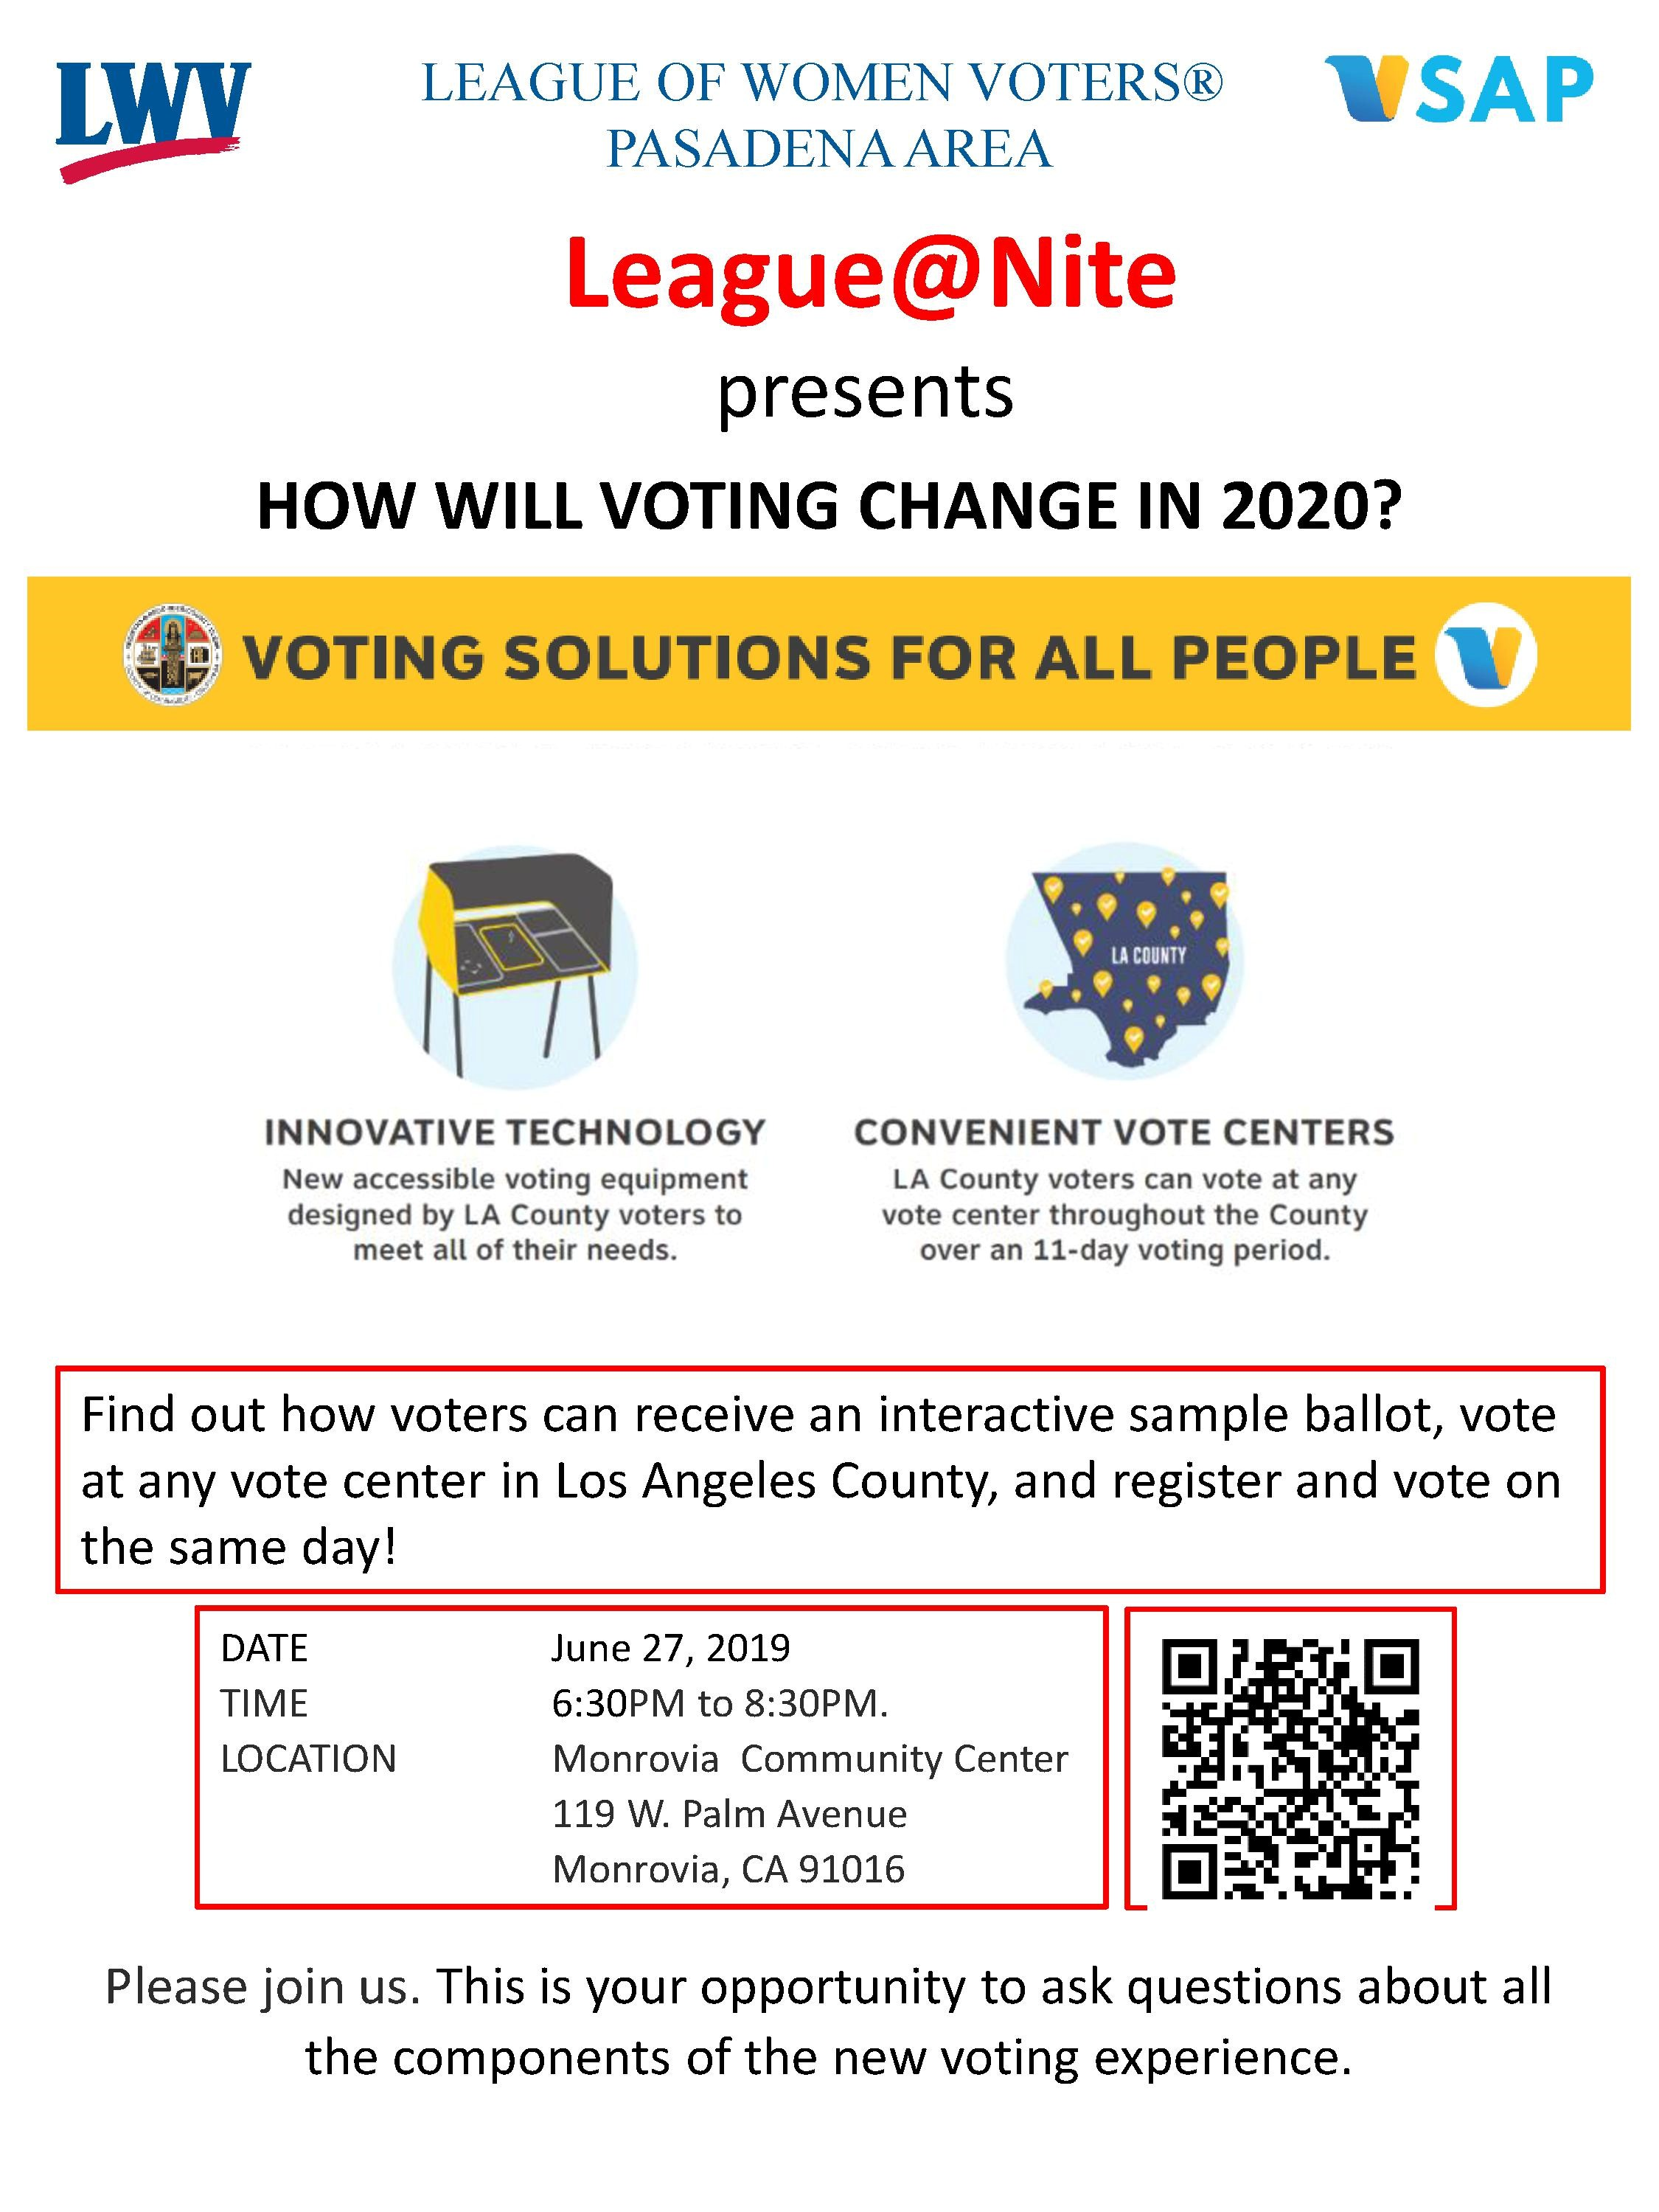 How will Voting Change in 2020?